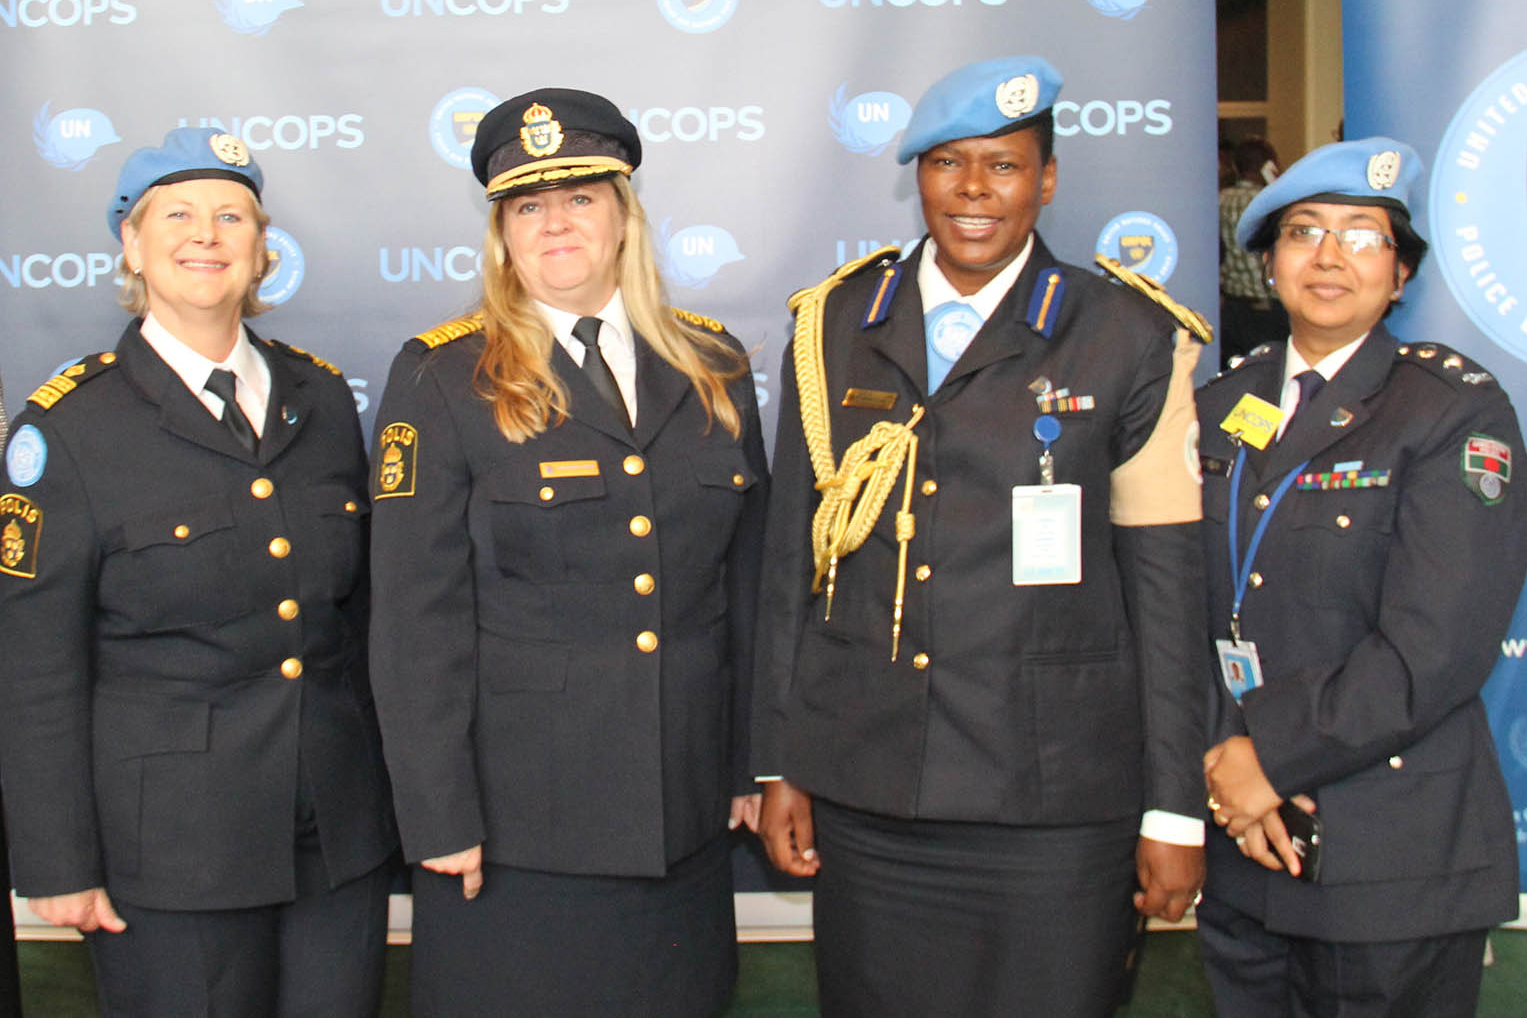 Senior police women during the UN Chiefs of Police Summit, Chief of the Standing Police Capacity, Maria Appelblom, former UN Police Adviser, Ann-Marie Orler, Police Commissioner of UNAMID, Priscilla Makotose and Planning Officer Taptun Nasreen. Photo: UN/